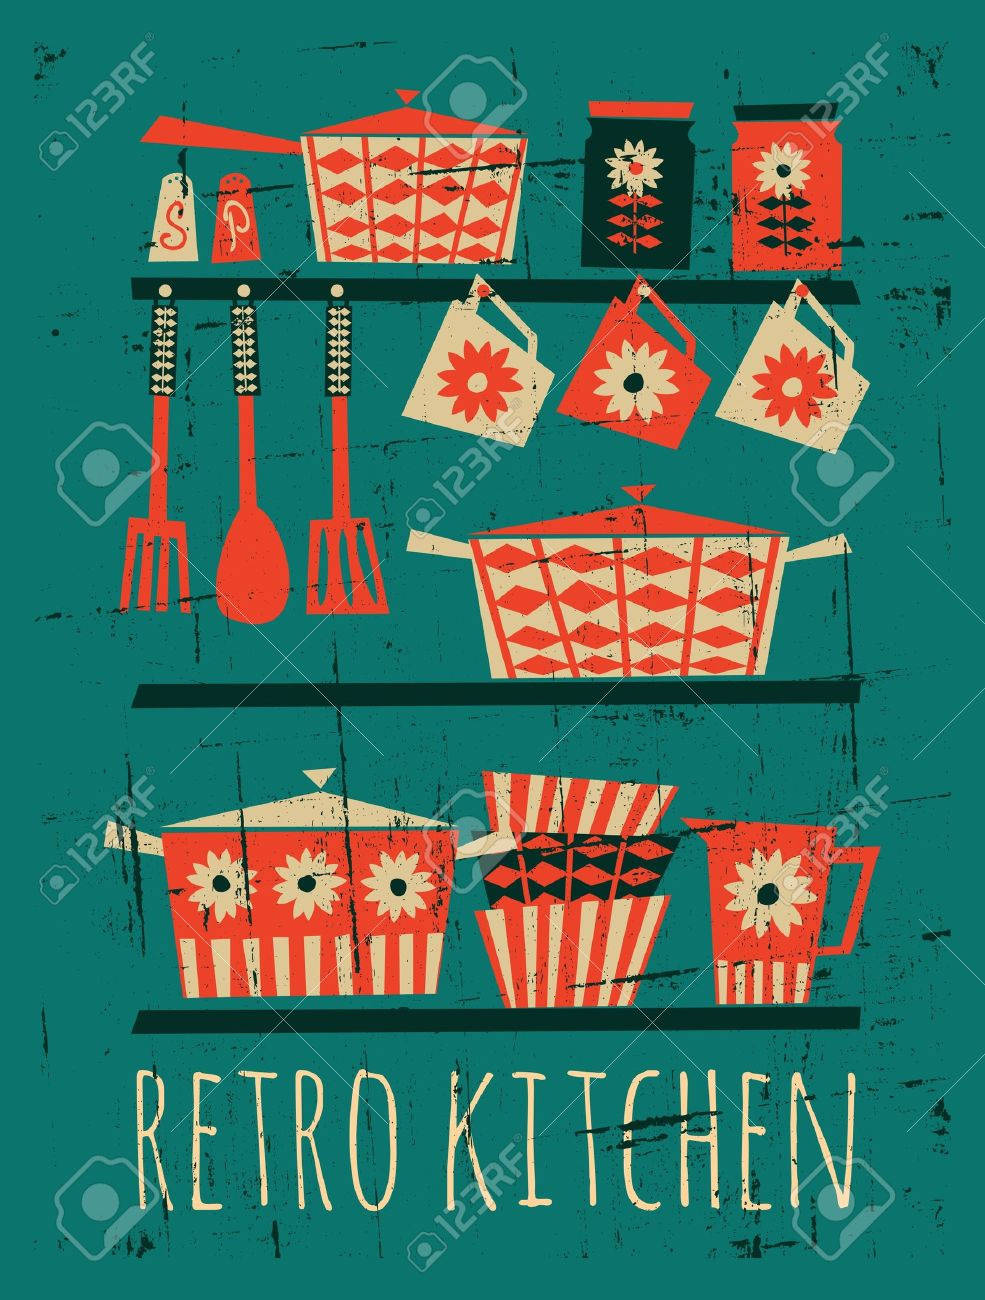 , retro kitchen cliparts, stock vector and royalty free retro, Kitchen design